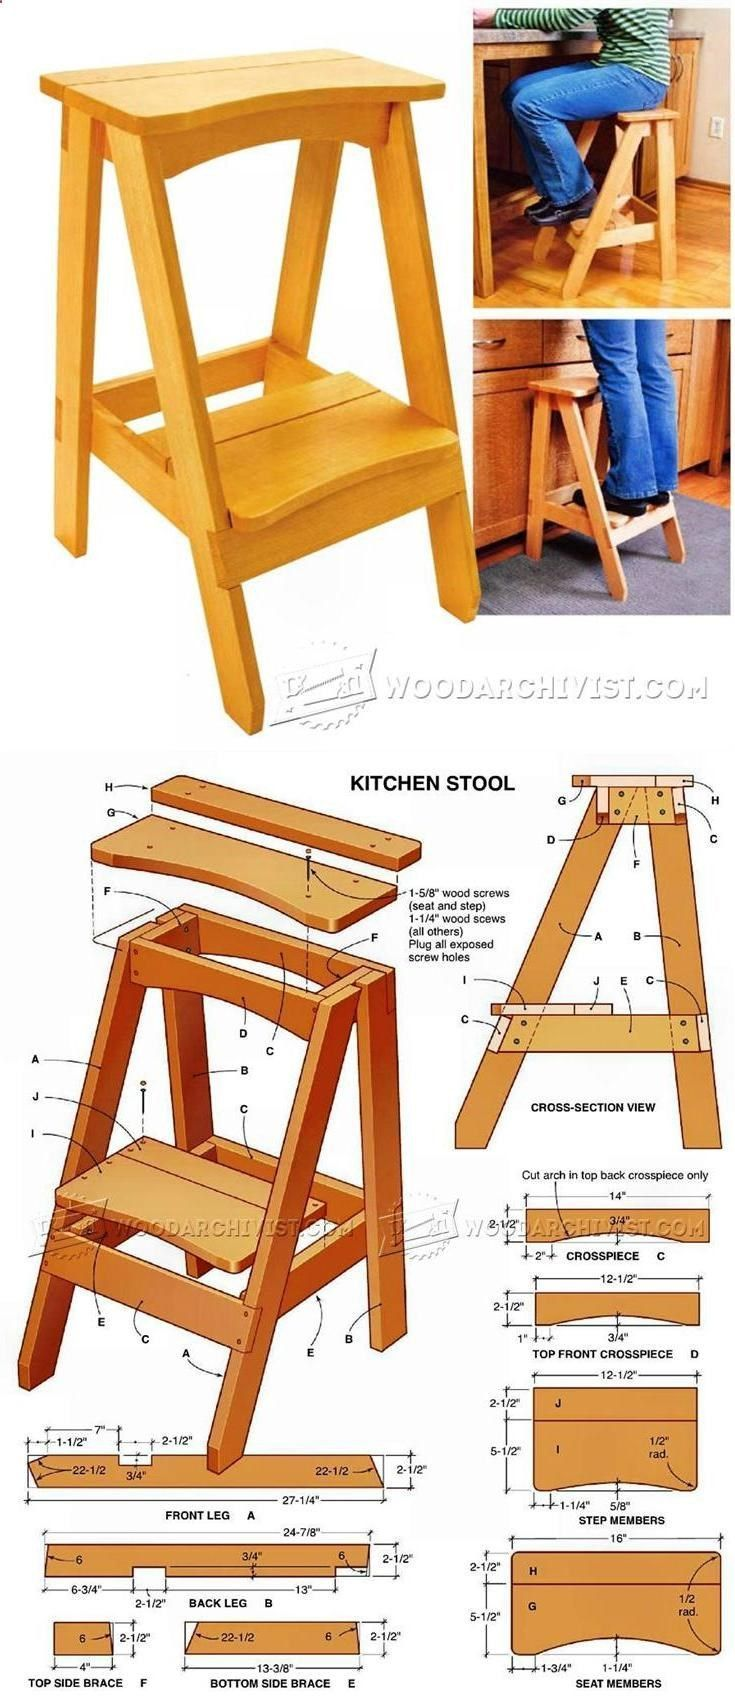 Teacher Resume Template Woodworking Furniture Plans Kitchen Step Stool Furniture Plans